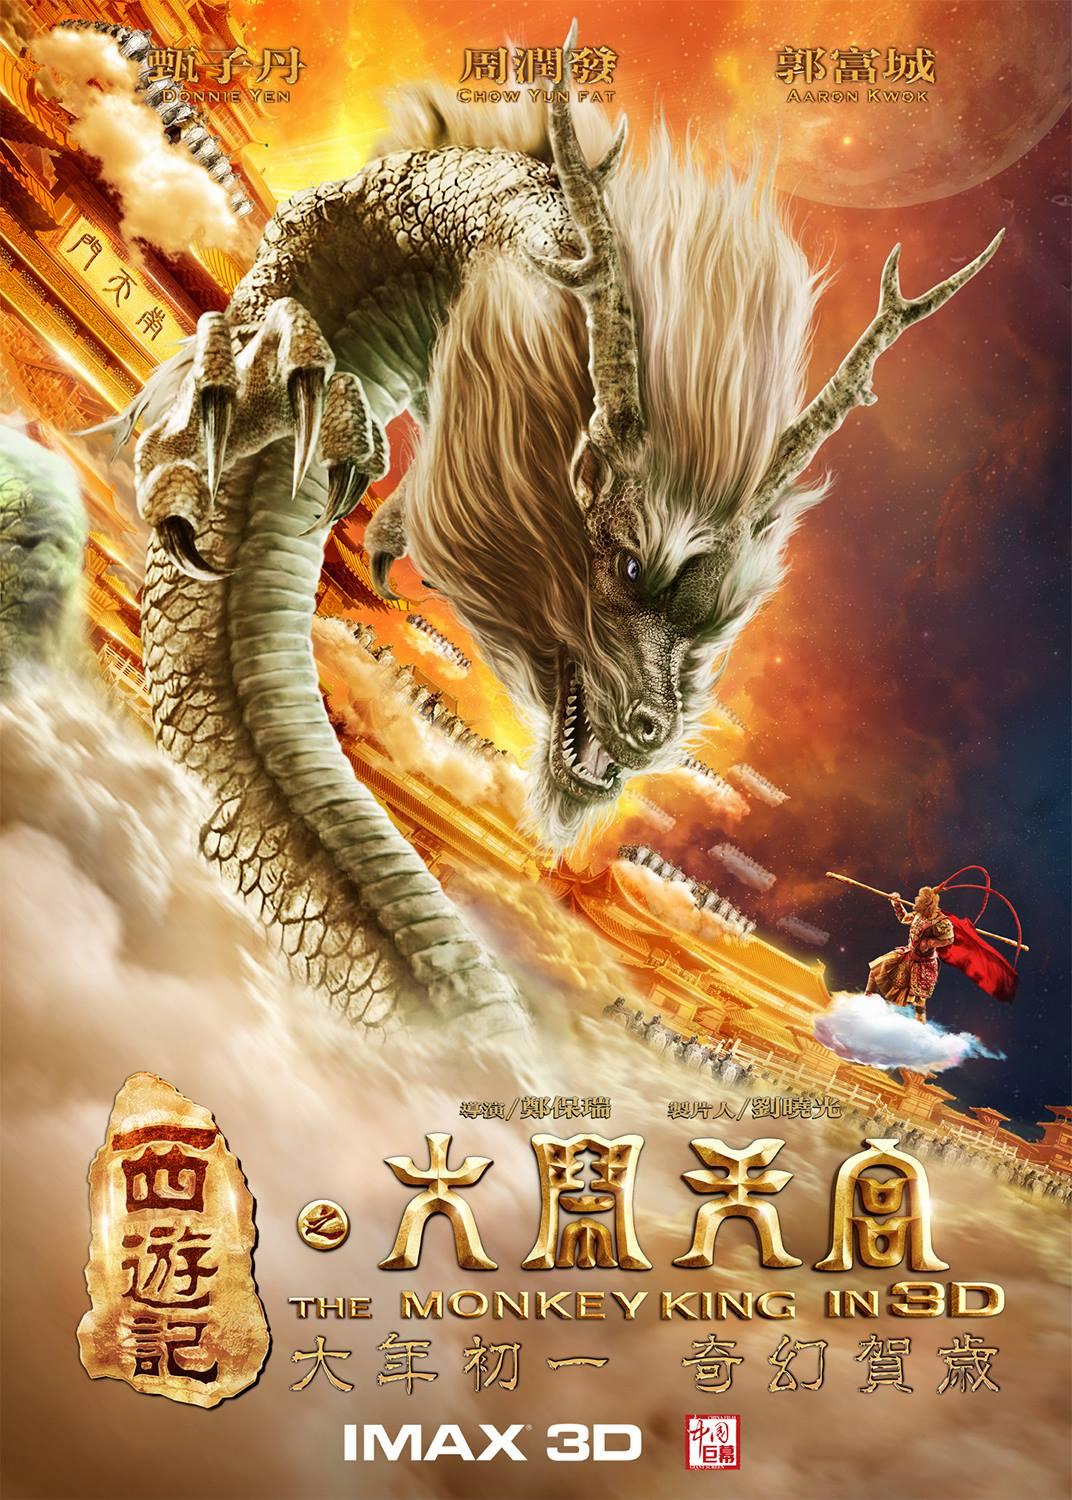 new �monkey king 3d� dragon action trailer and images updated